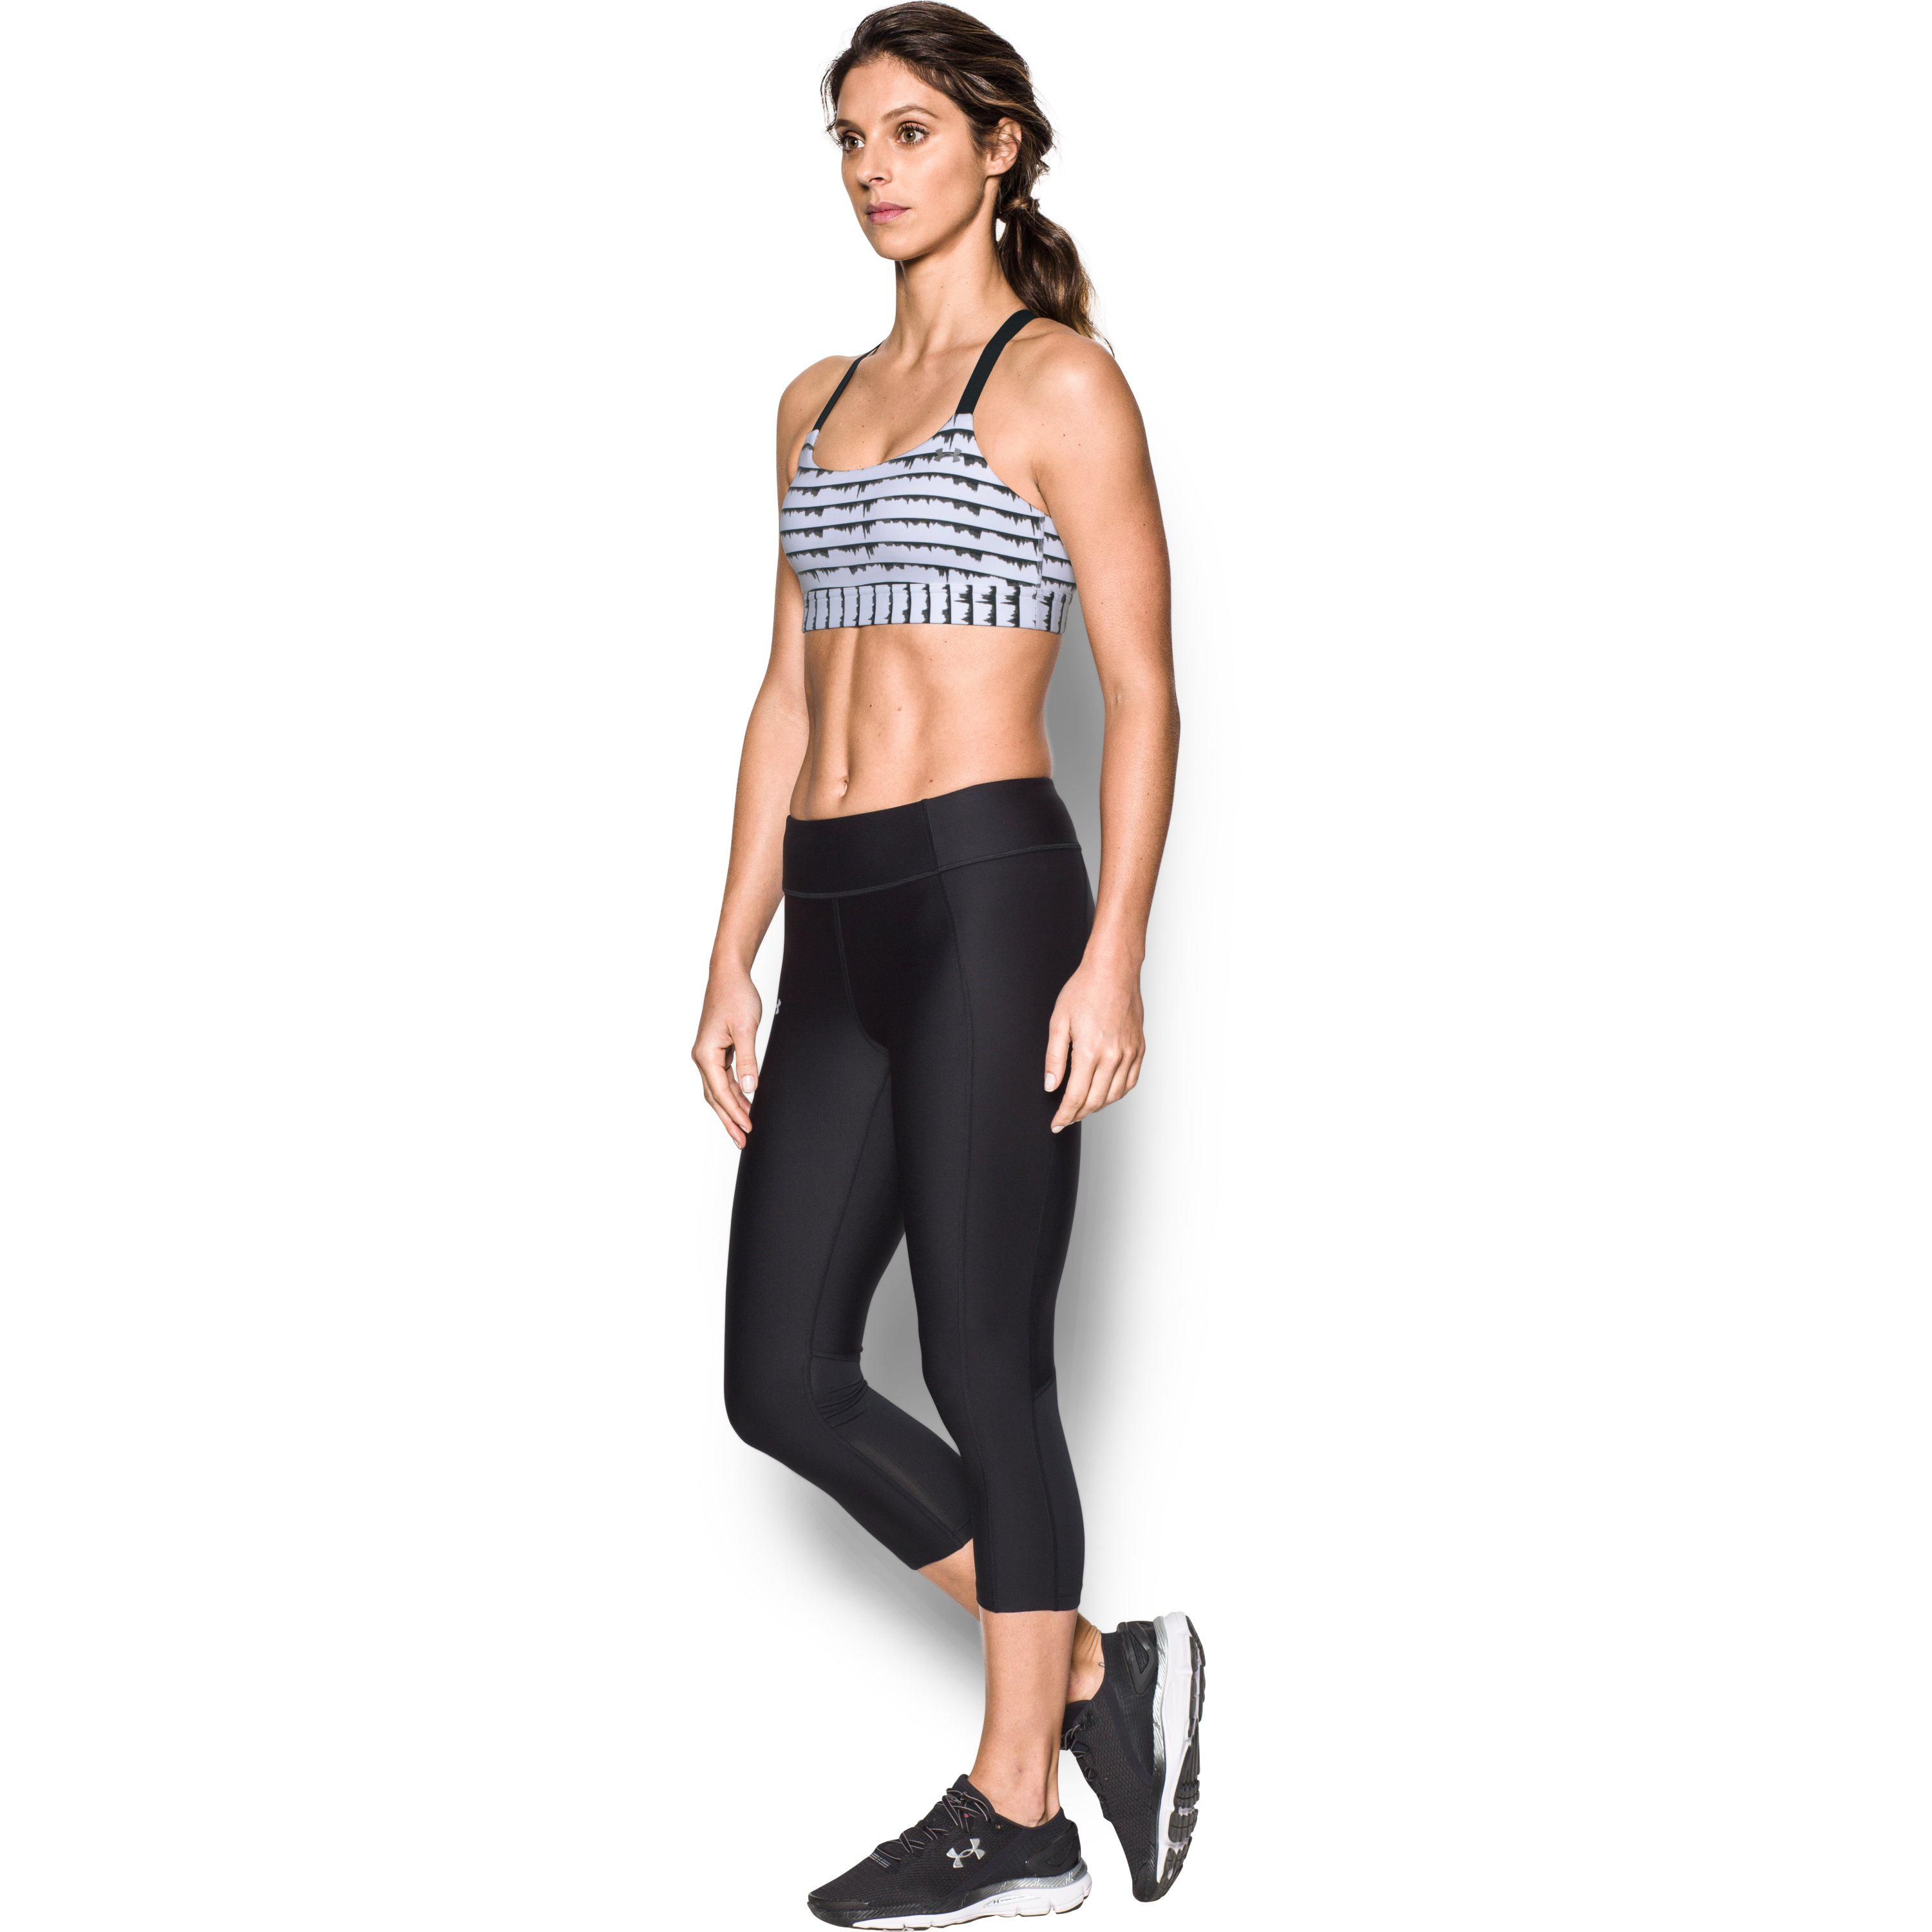 c095b1f6d0 Lyst - Under Armour Women s Armour® Eclipse Printed Sports Bra in Black